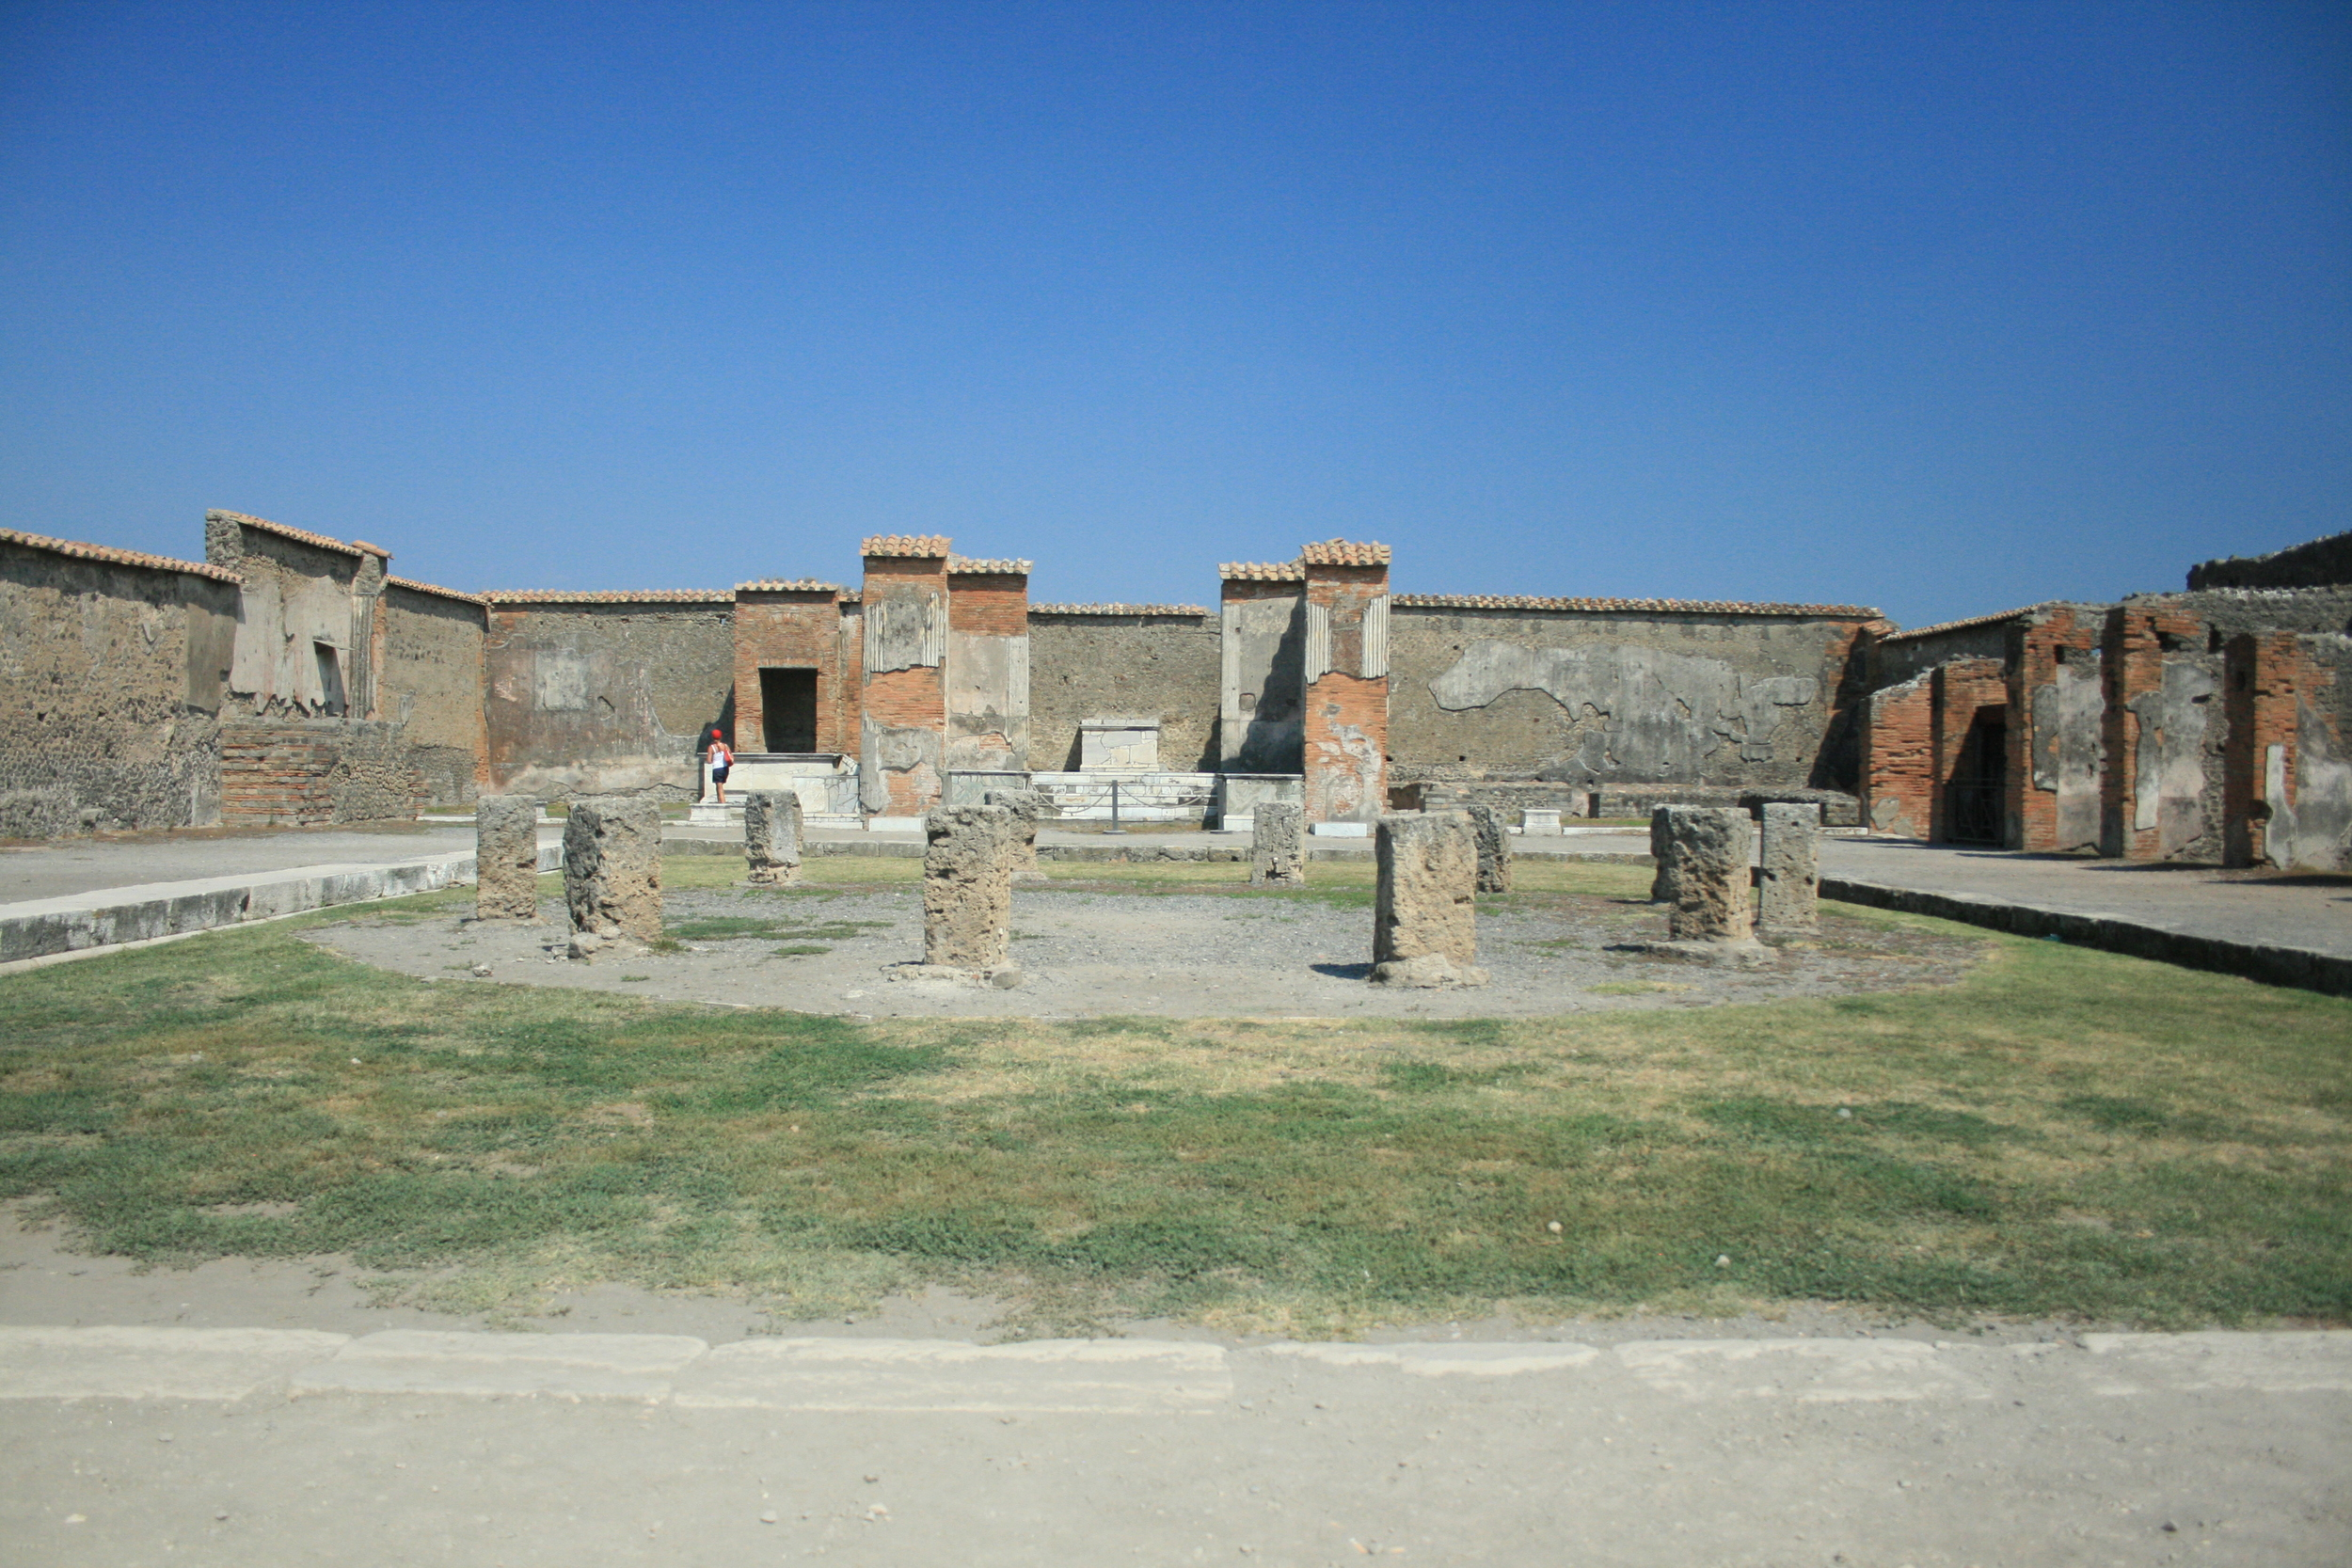 The Macellum at Pompeii - the city's main market